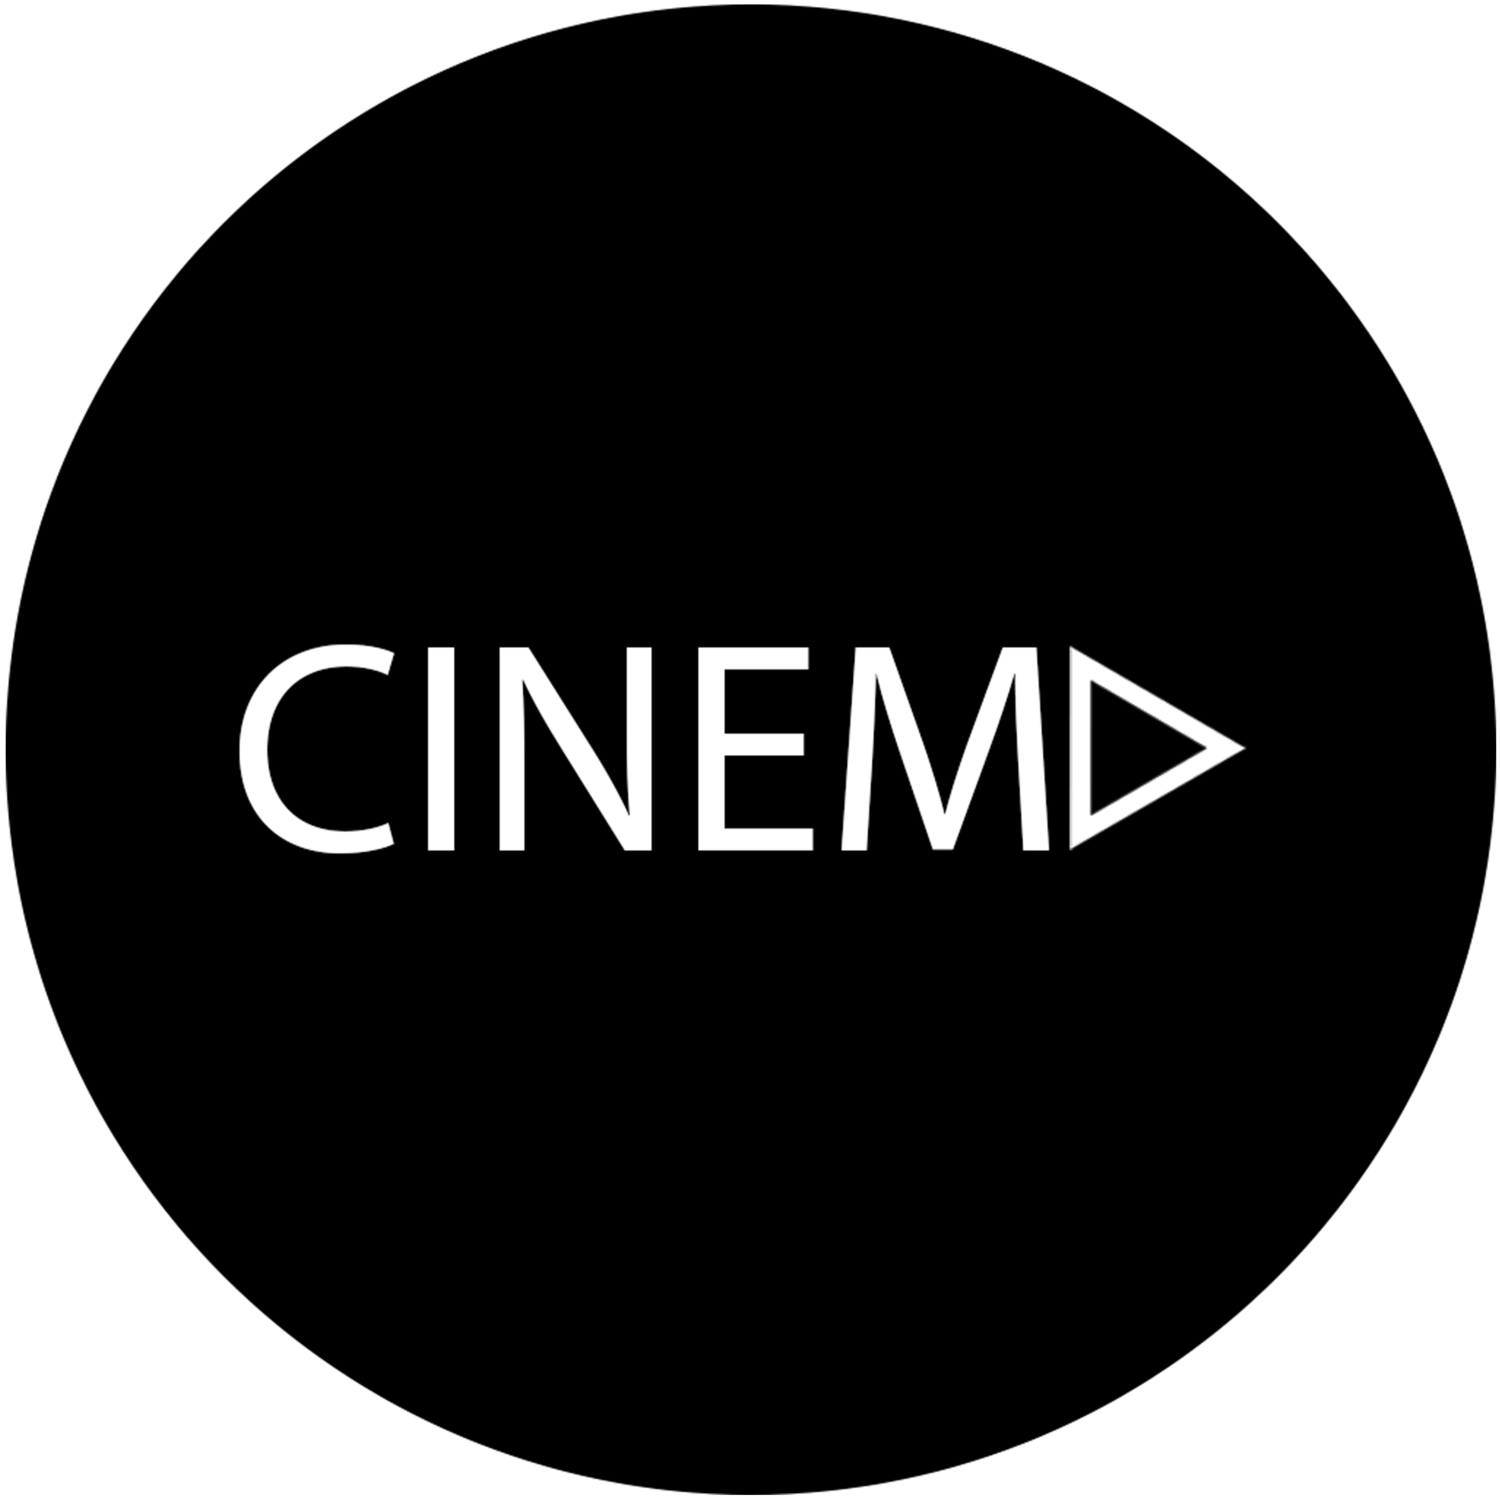 Cinema AS